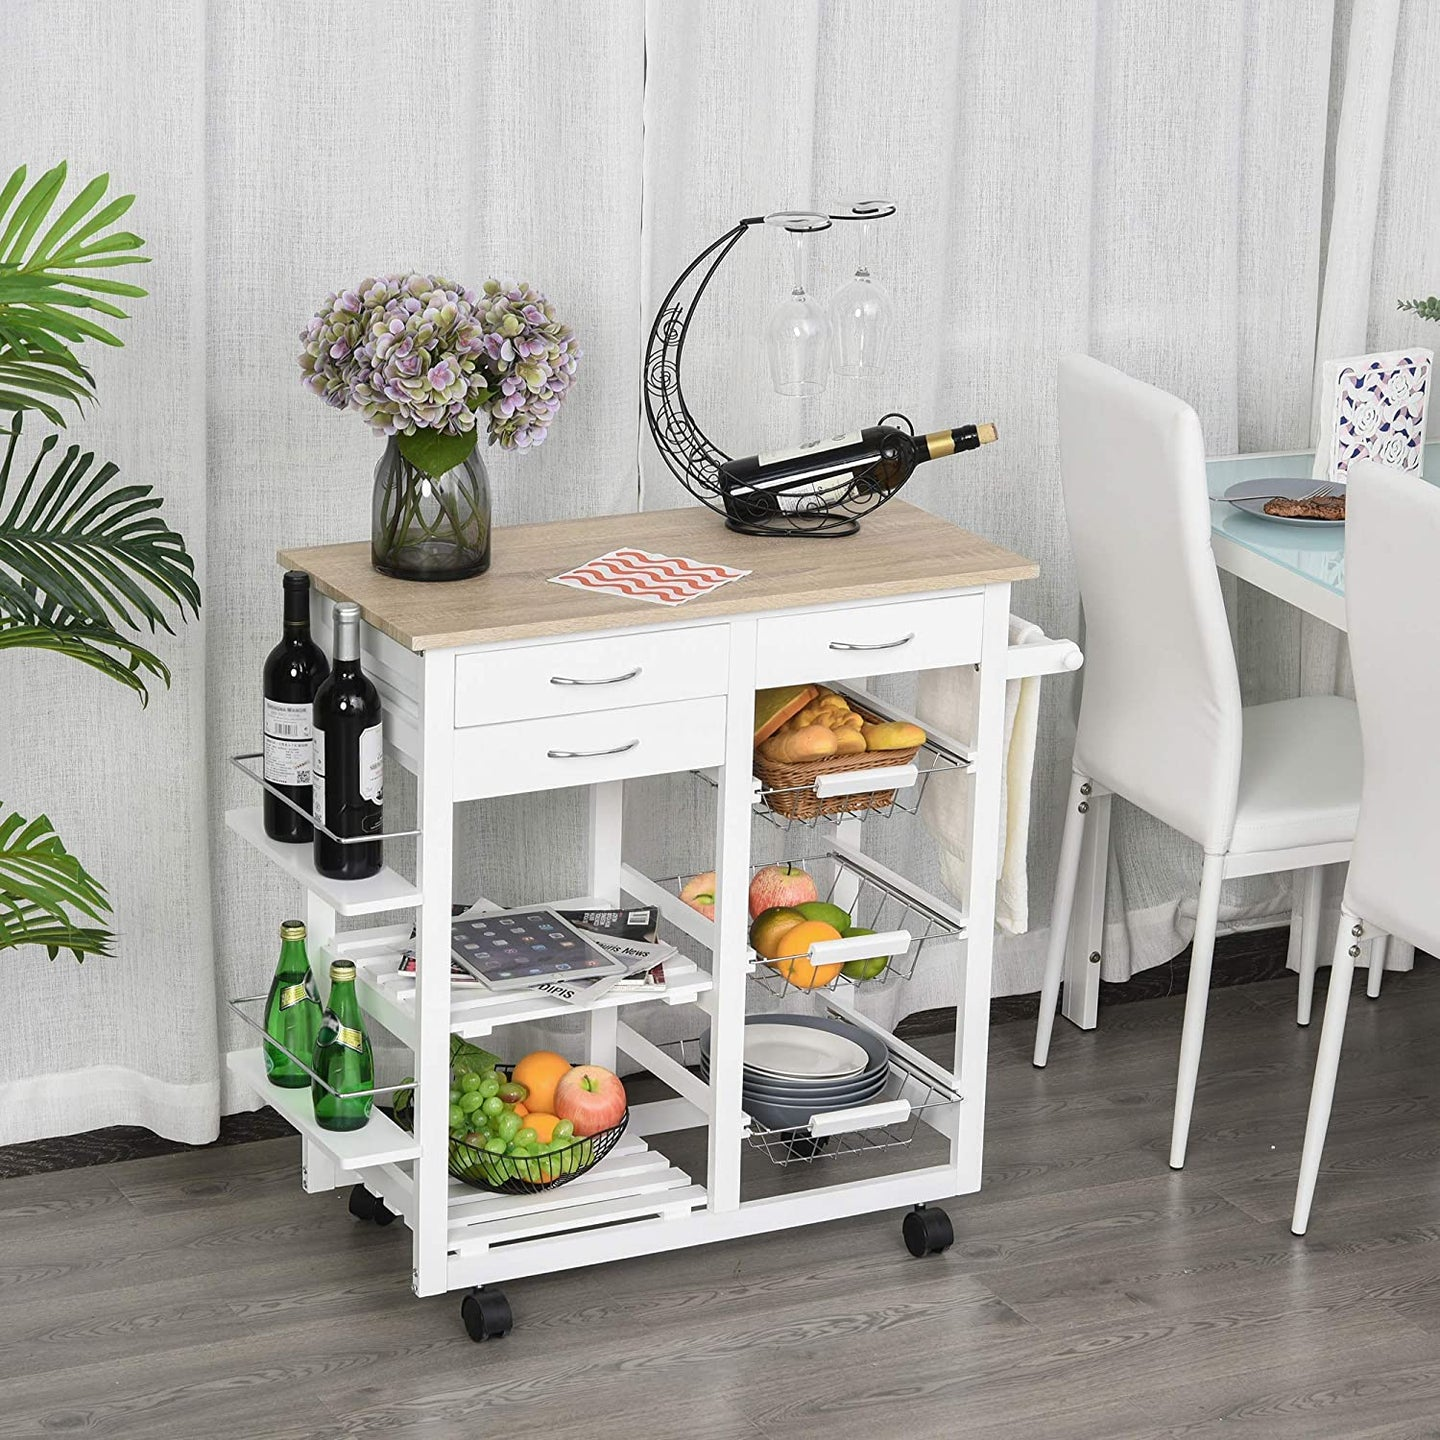 HOMCOM Rolling Kitchen Island on Wheels Trolley Utility Cart with Spice Racks, Towel Rack, Baskets & Drawers for Dining Room